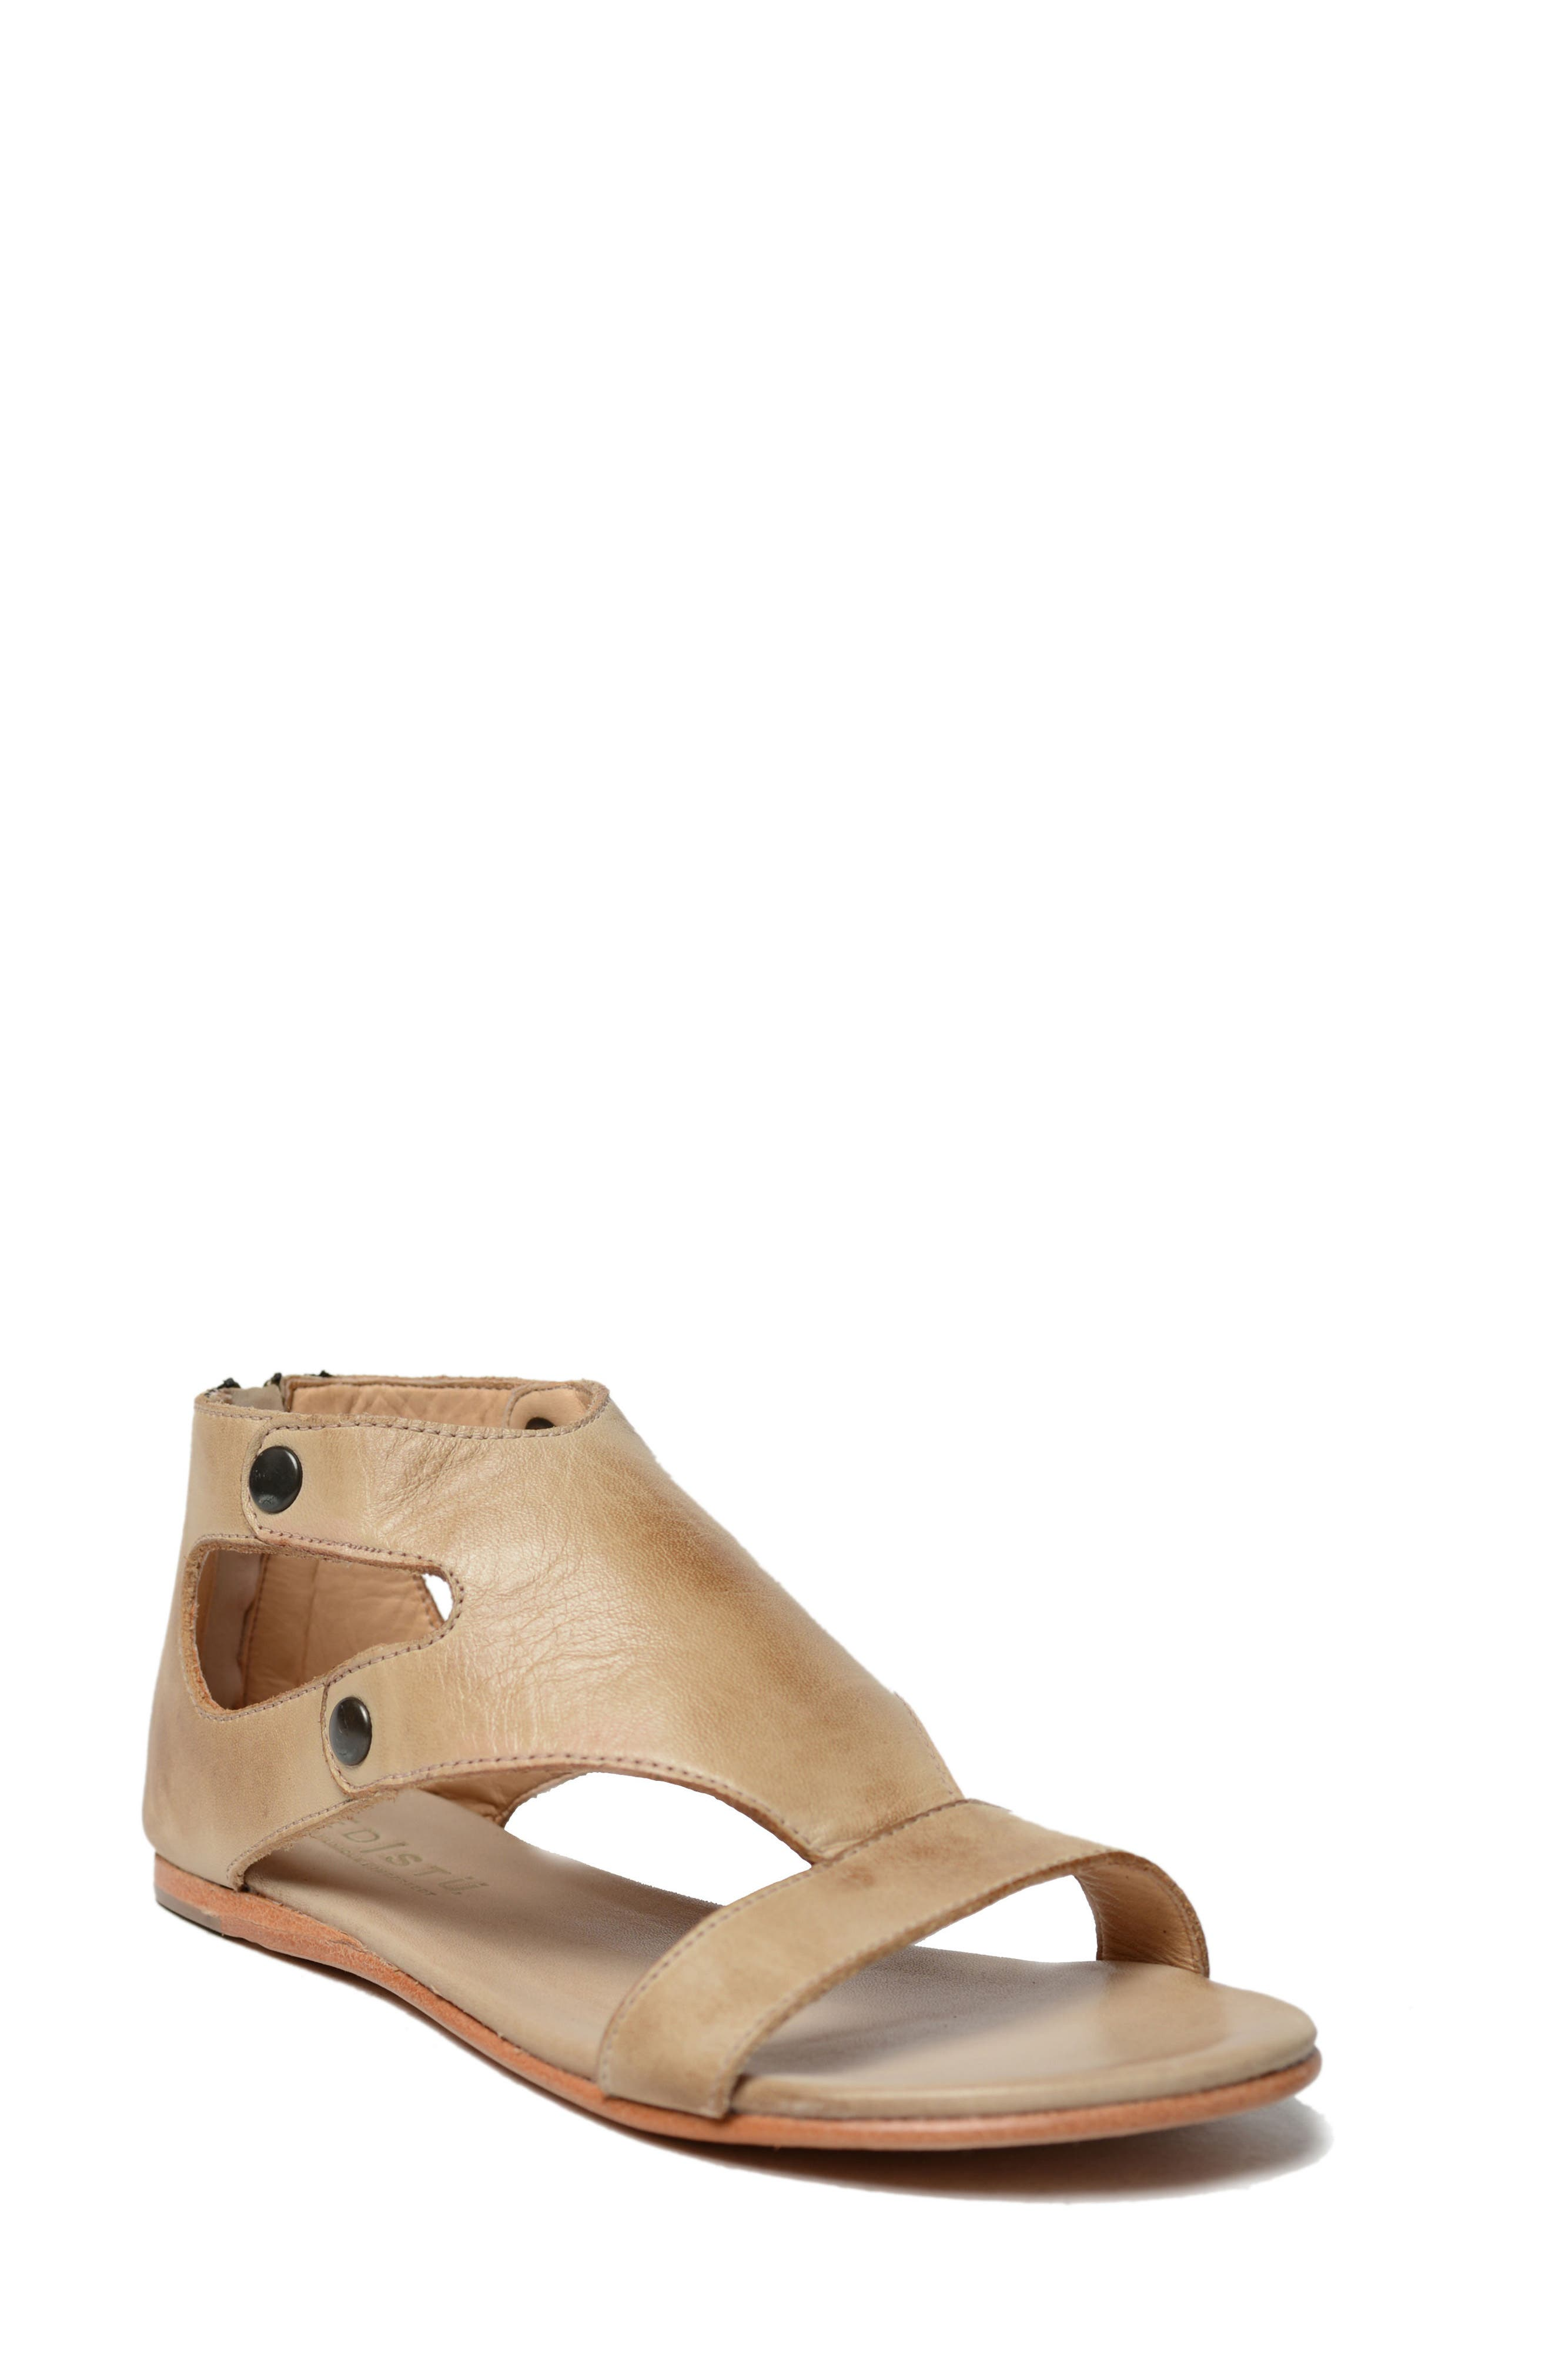 Soto Sandal,                         Main,                         color, SAND RUSTIC LEATHER